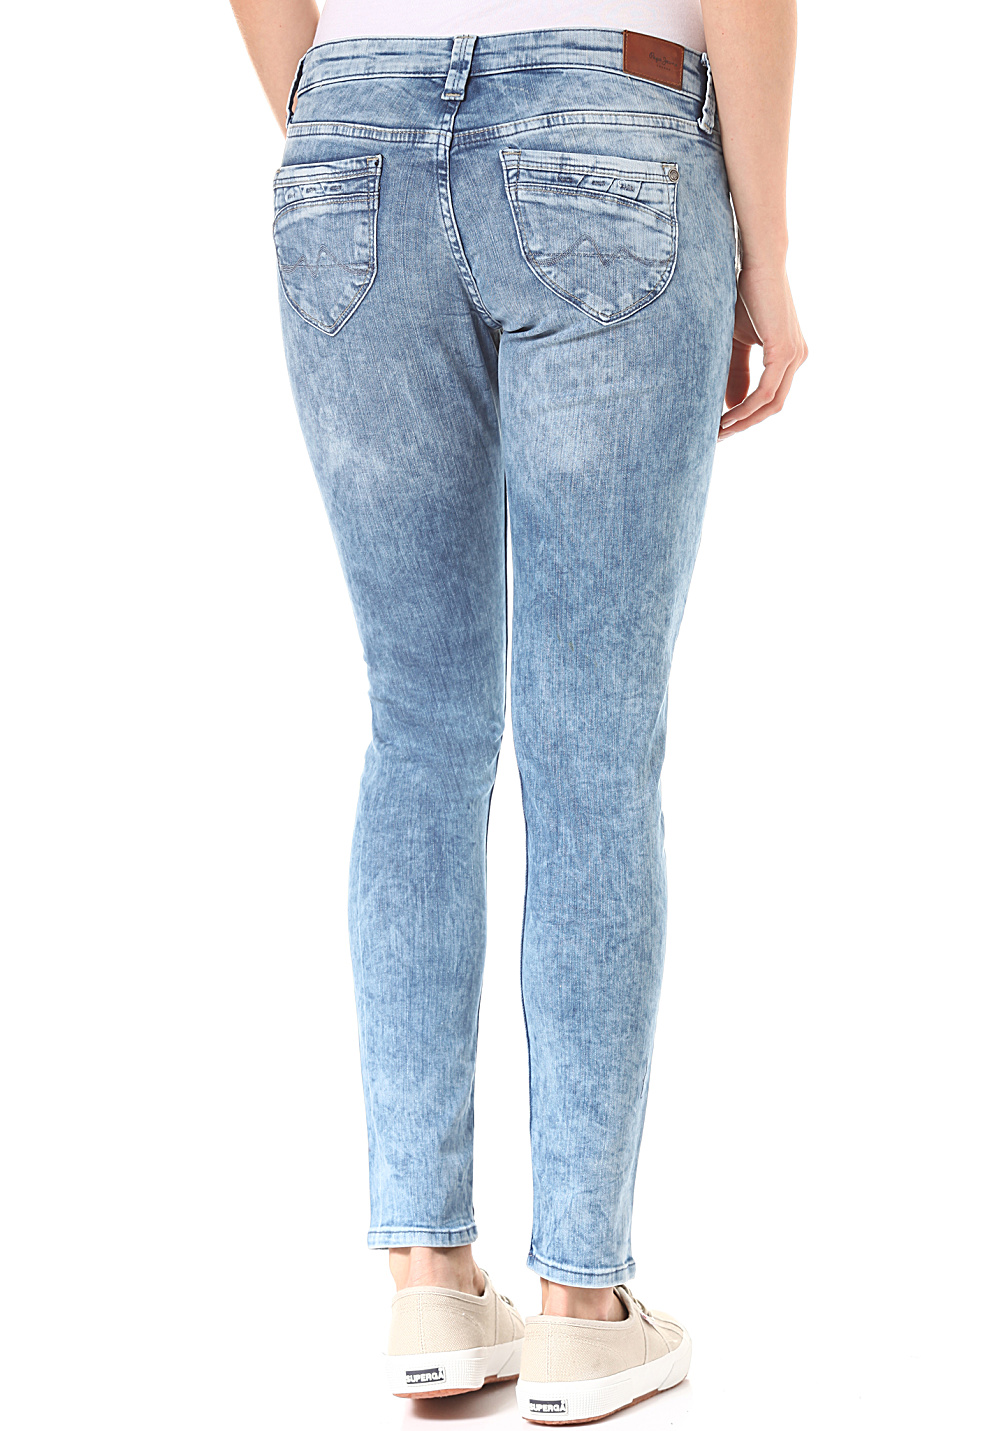 Planet Sports Donna Ripple Blu Per Jeans Pepe YXgxqTw